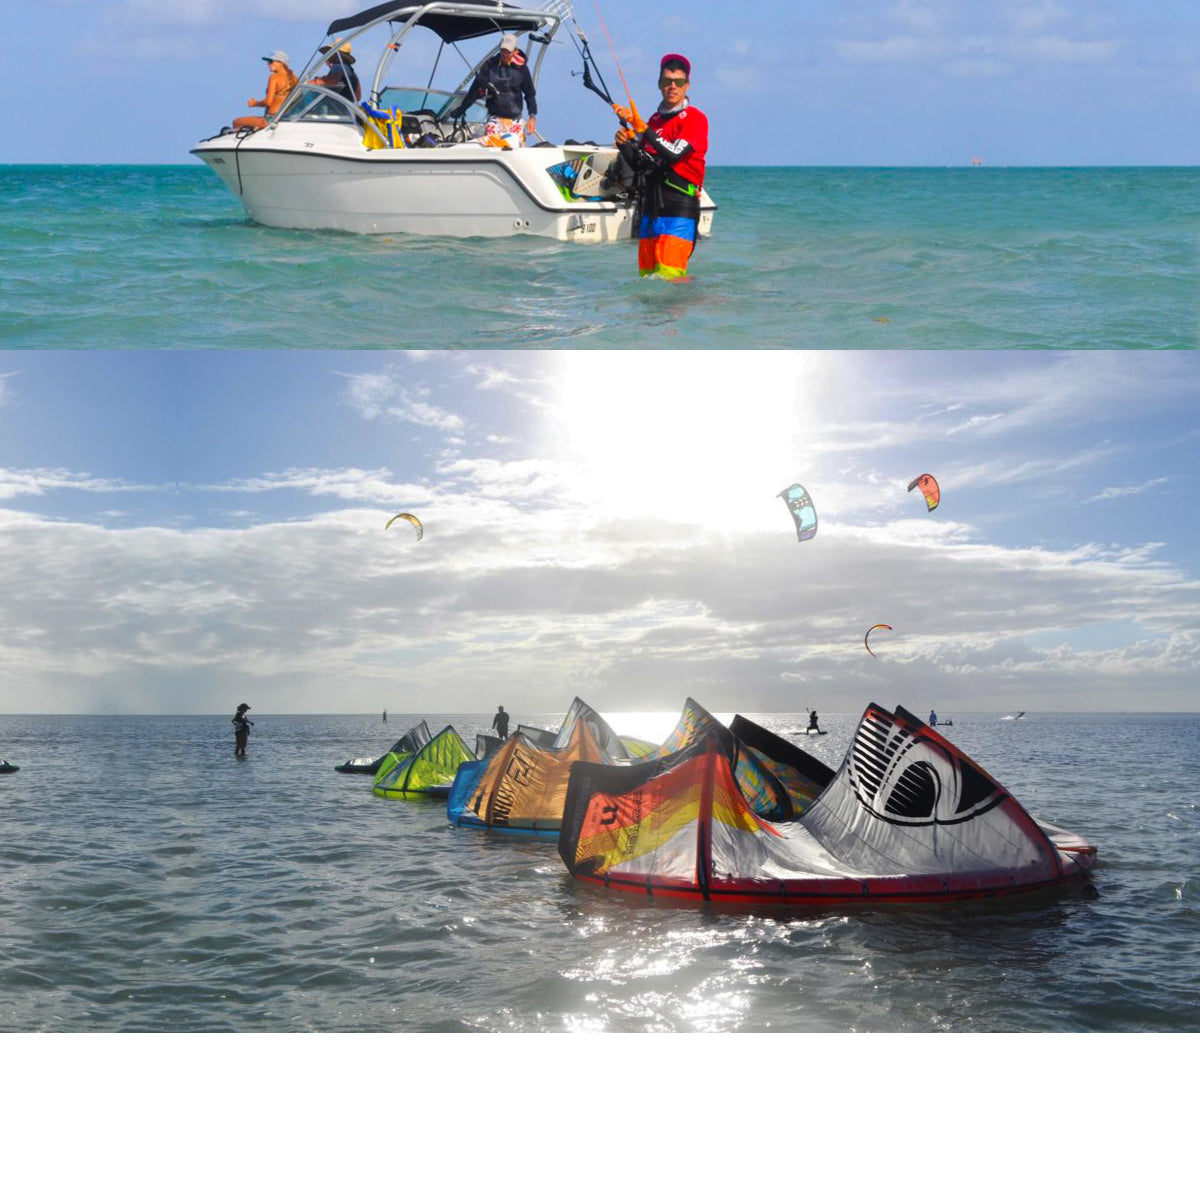 4 HOURS KITE CHARTER + CAPTAIN & ASSISTANCE